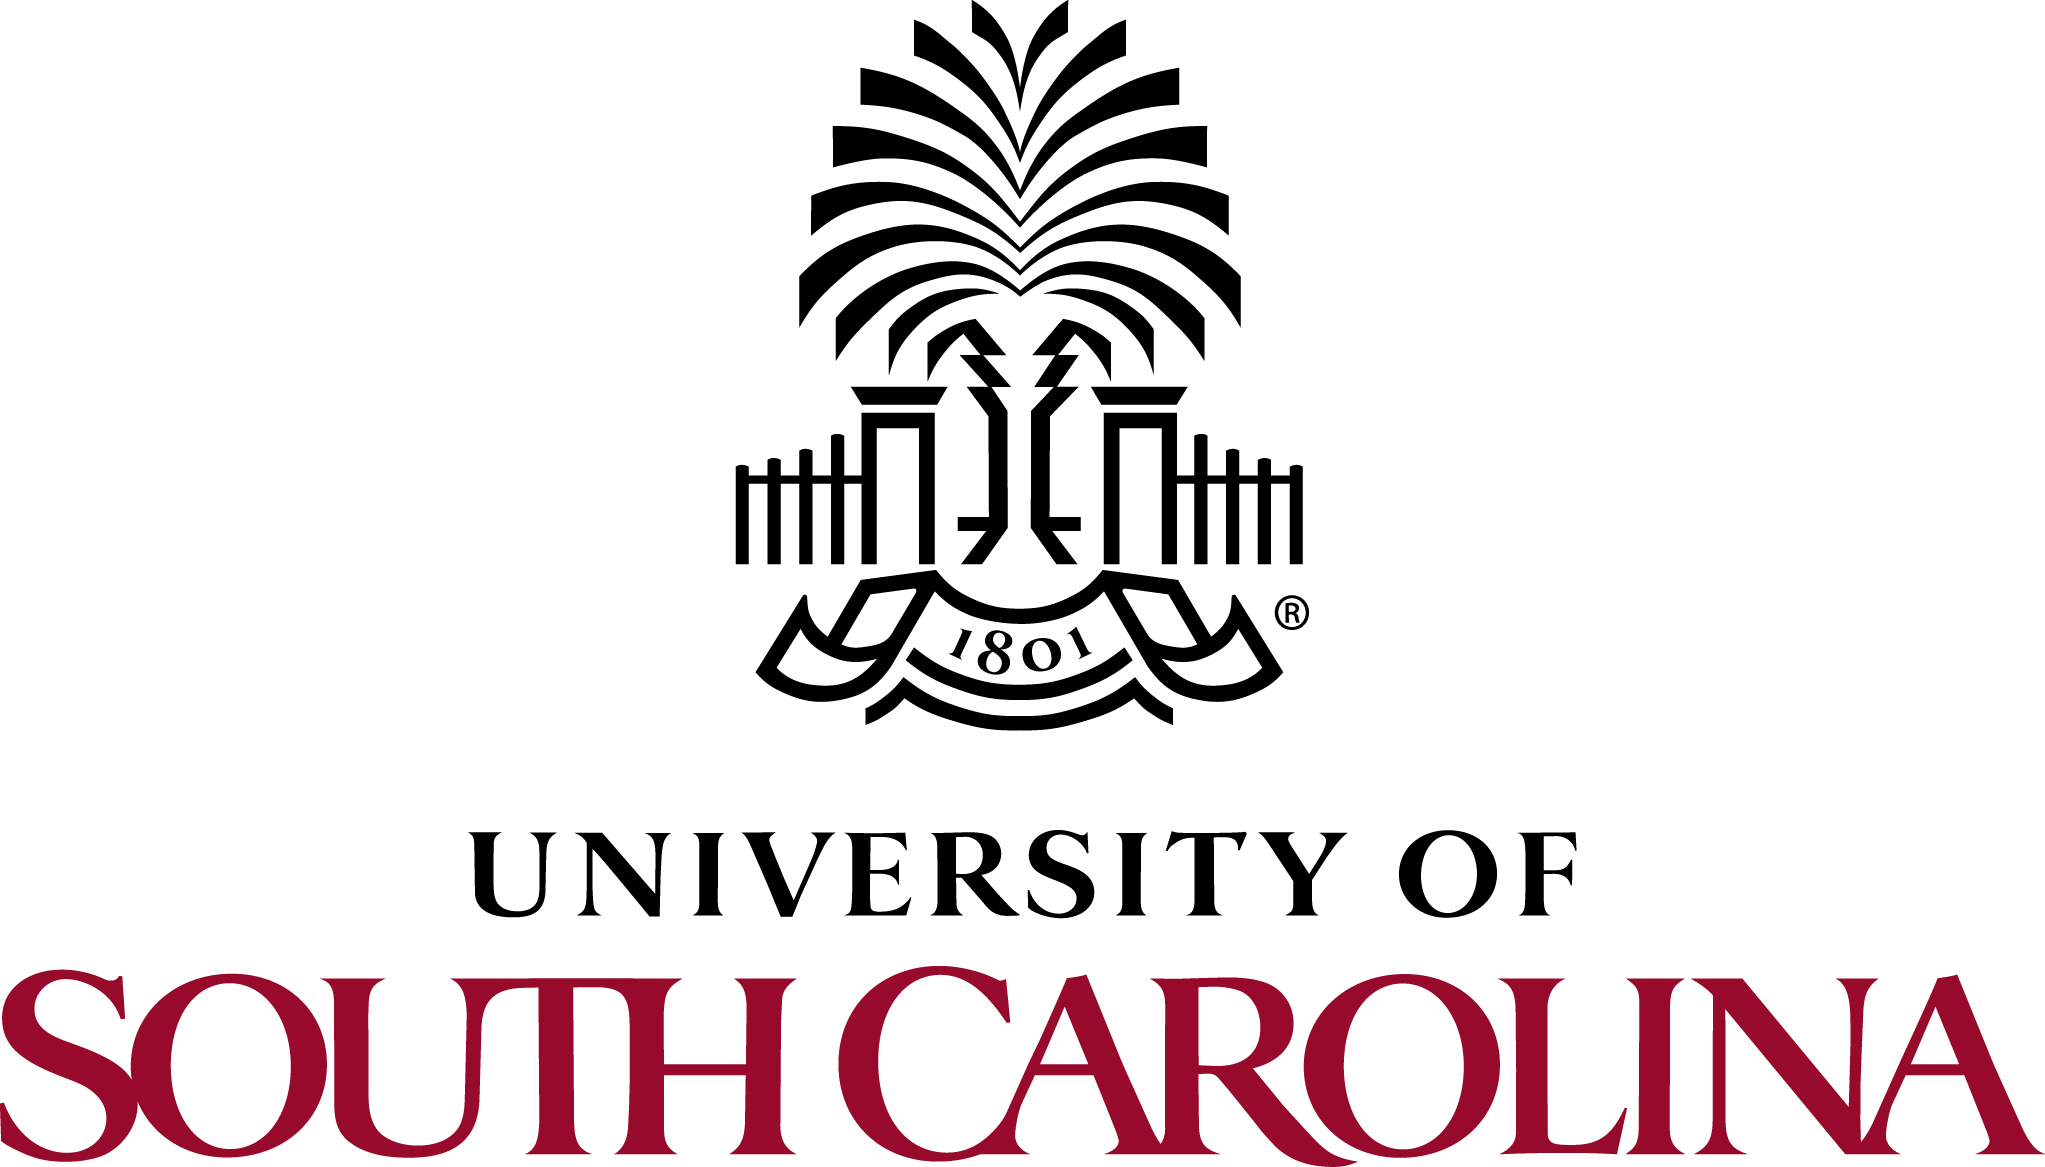 University Of South Carolina University Of South University Of South Carolina South Carolina Schools